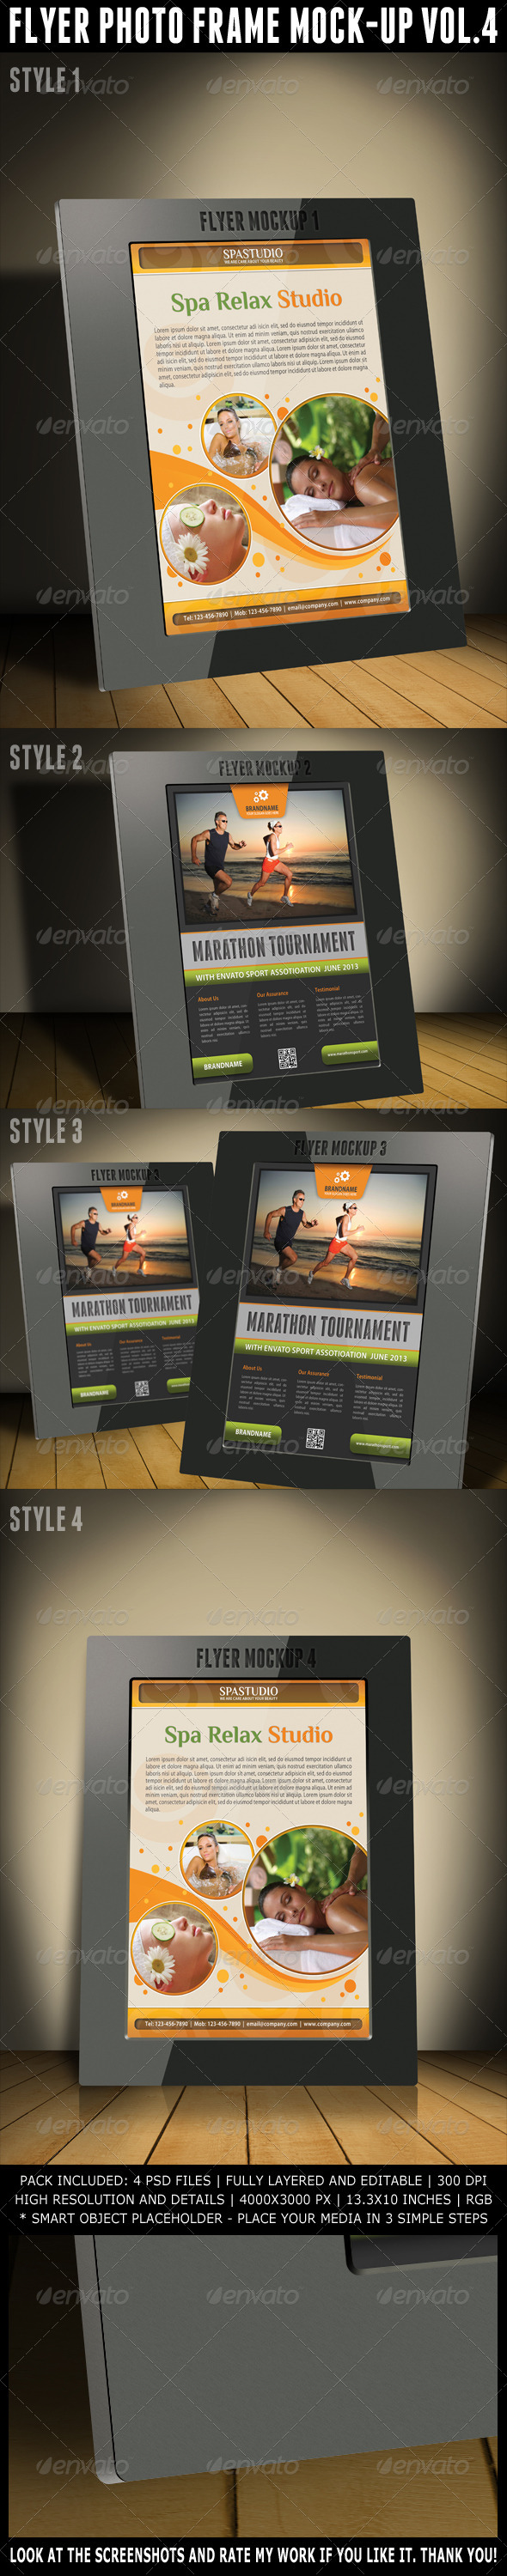 GraphicRiver Flyer Photo Frame Mock-Up Vol.4 5130104